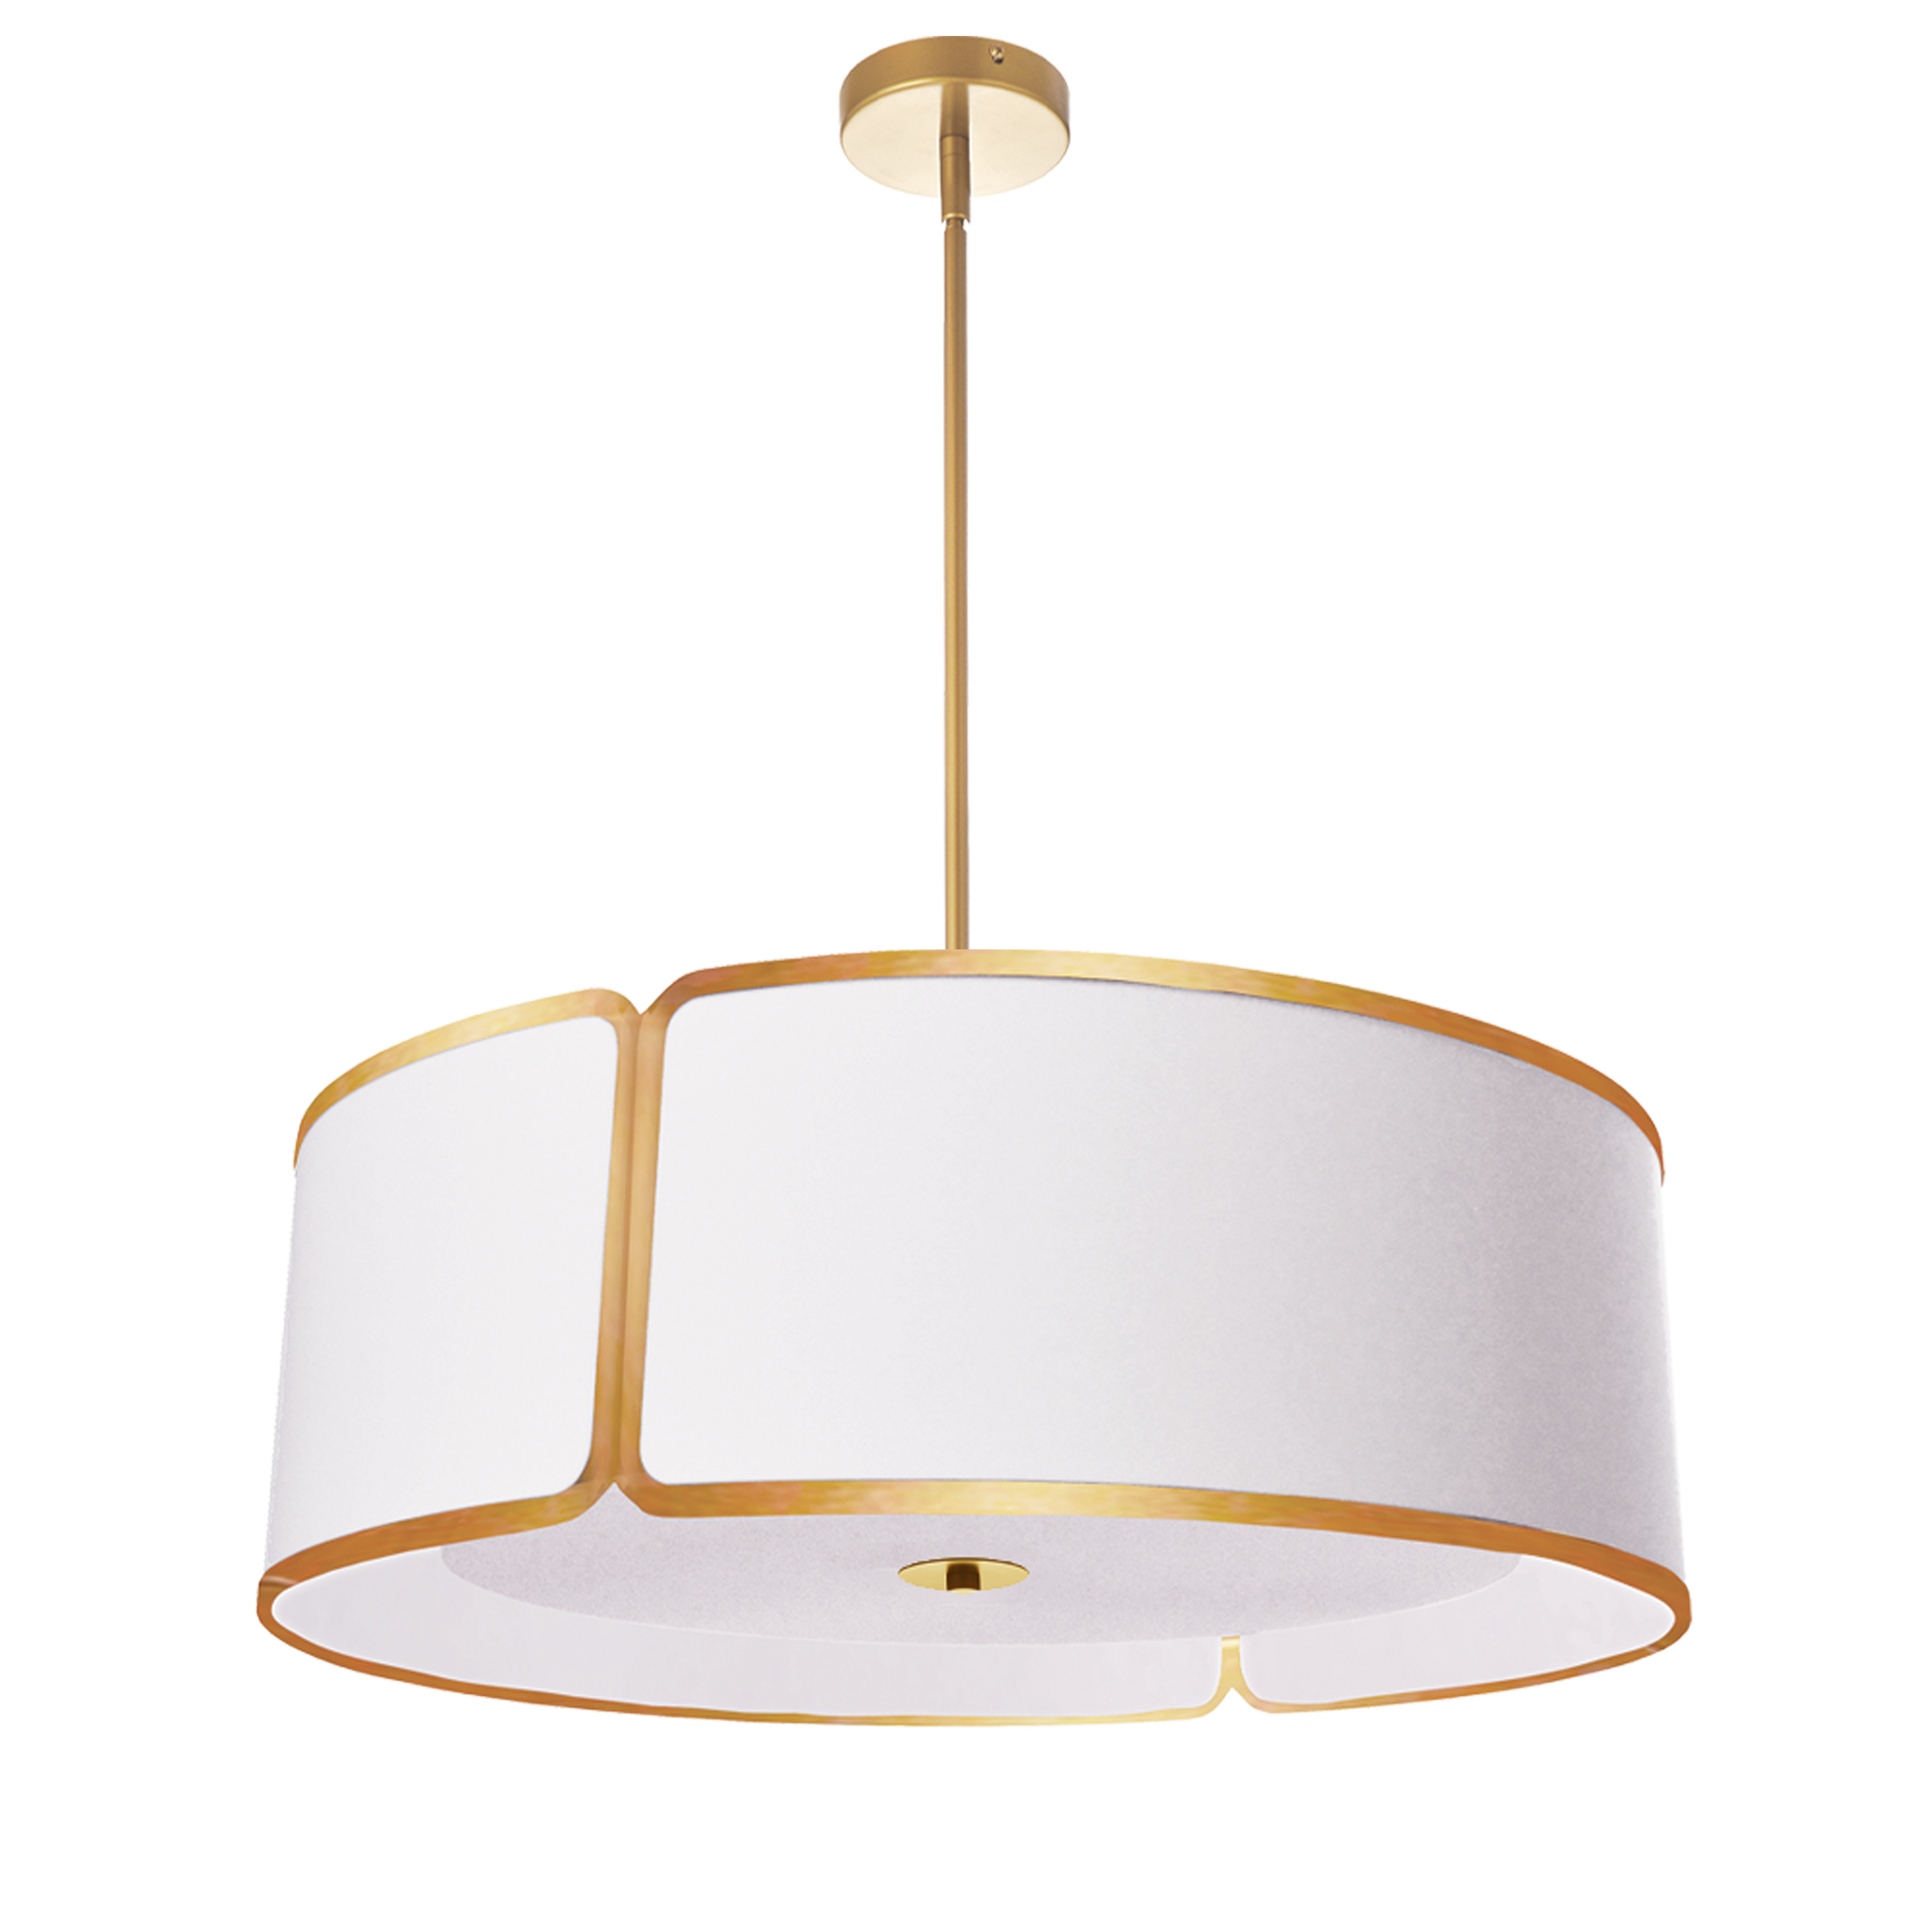 4 Light Gold Notched Drum Pendant, White Shade and Diffuser